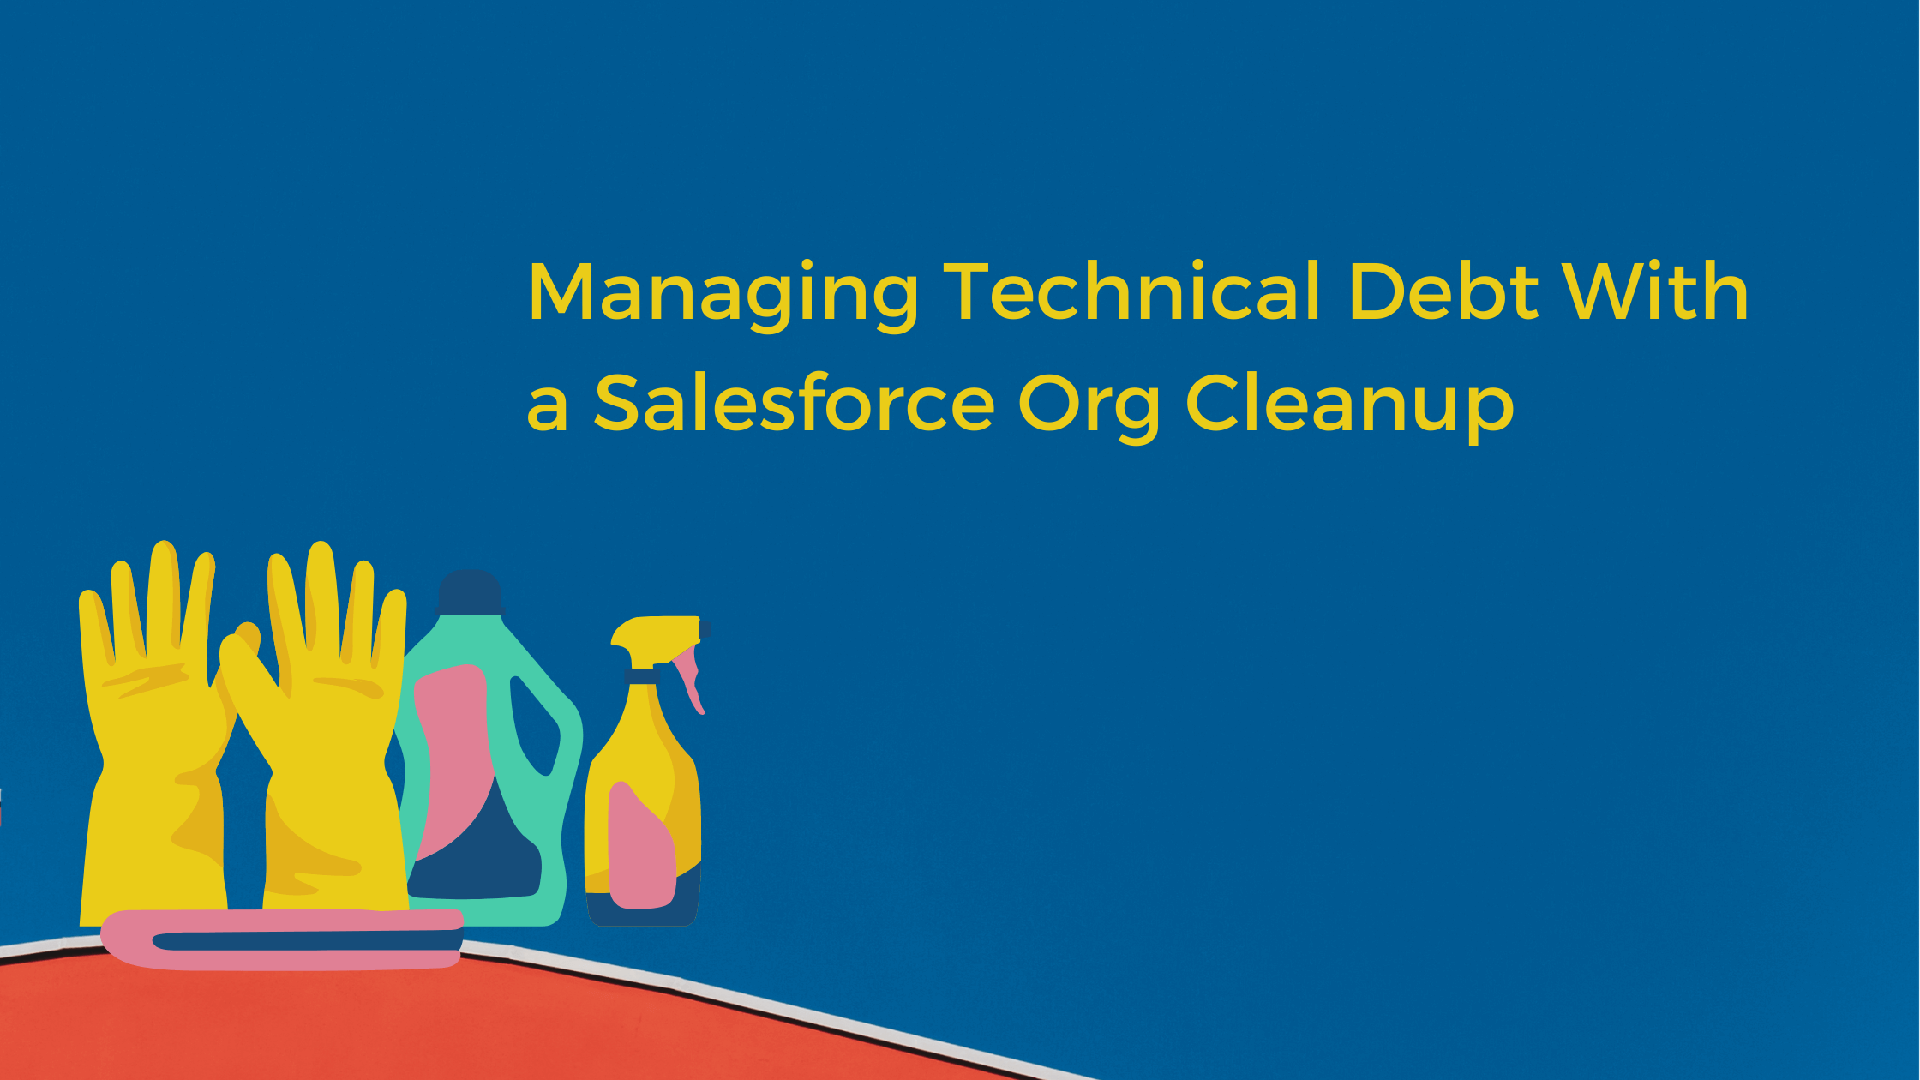 Managing Technical Debt With a Salesforce Org Cleanup